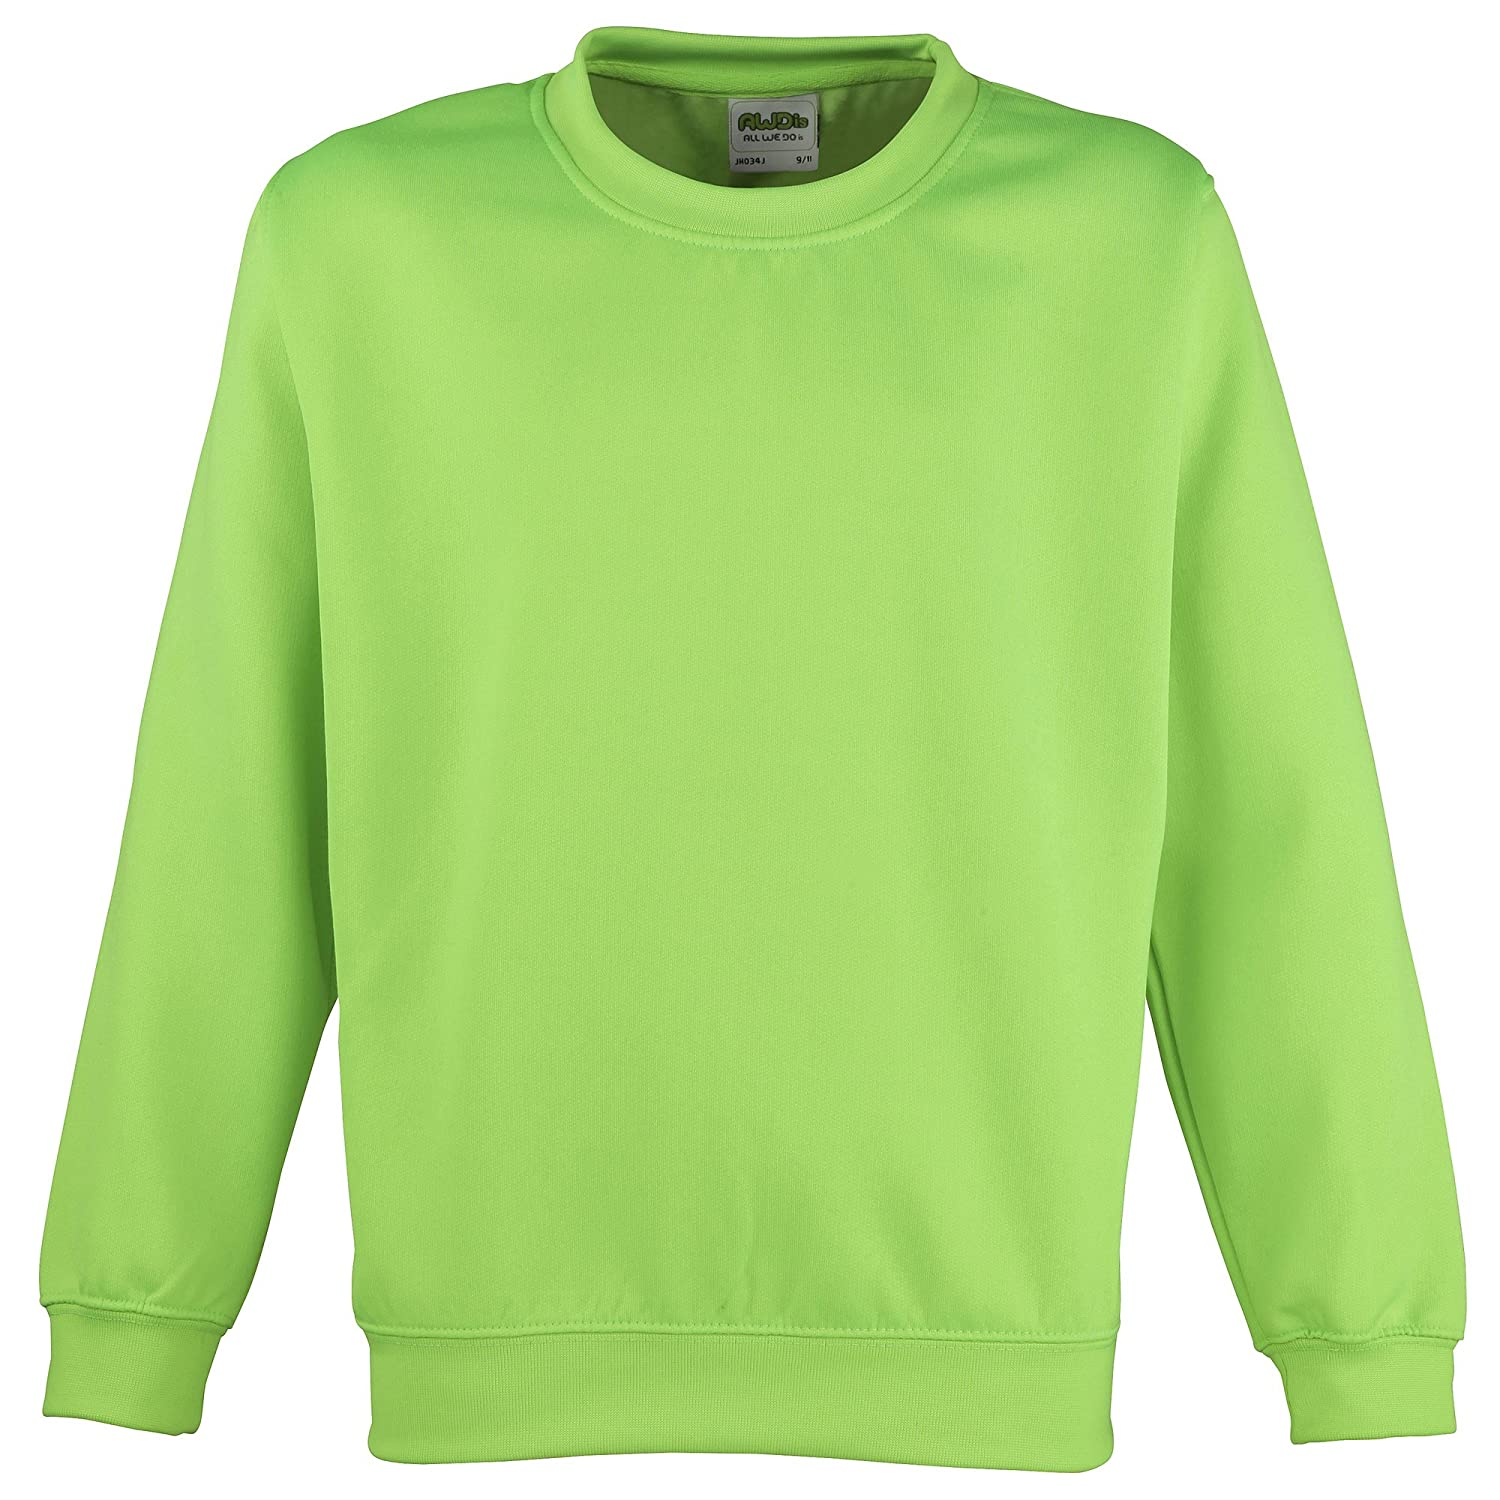 Awdis Childrens Unisex Electric Sweatshirt/Schoolwear